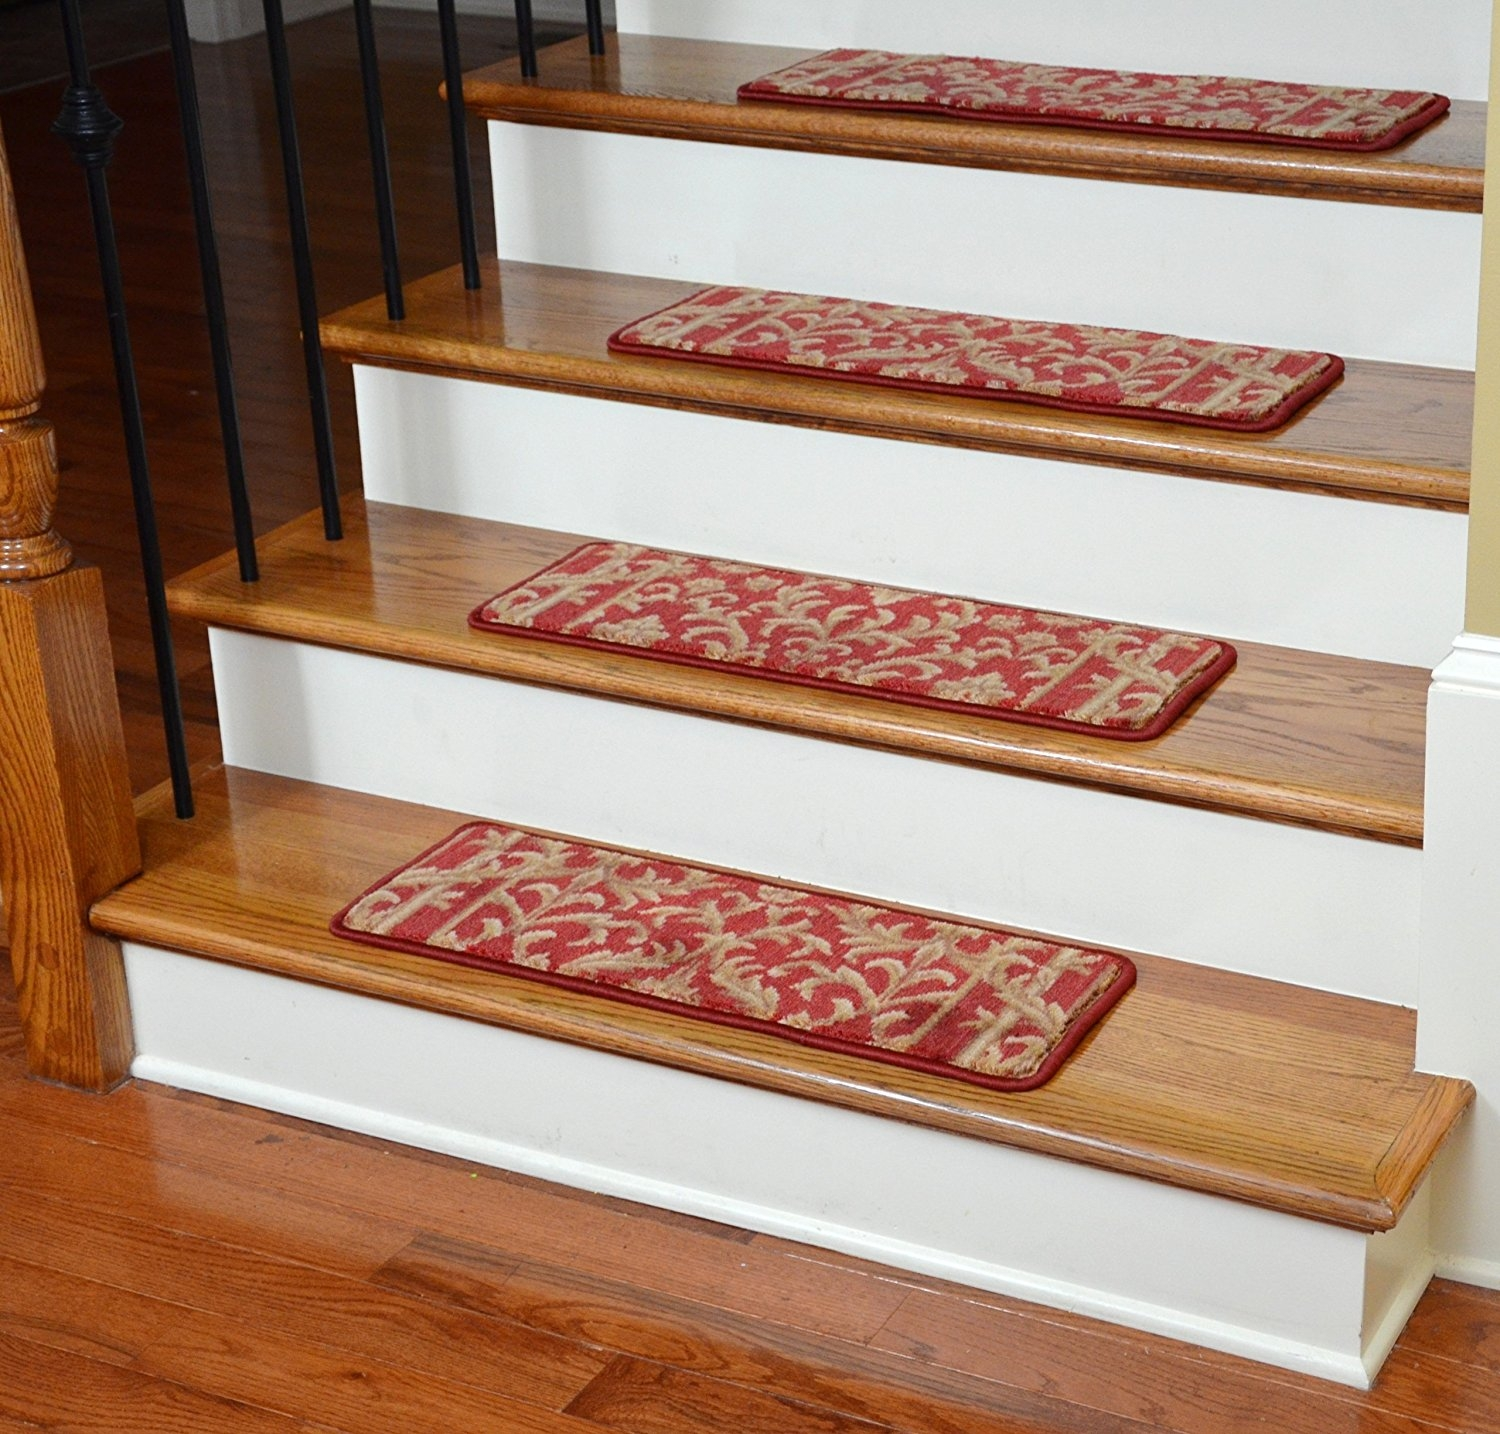 Flooring Pretty Stair Treads Carpet For Stair Decoration Idea Throughout Wool Stair Rug Treads (#14 of 20)